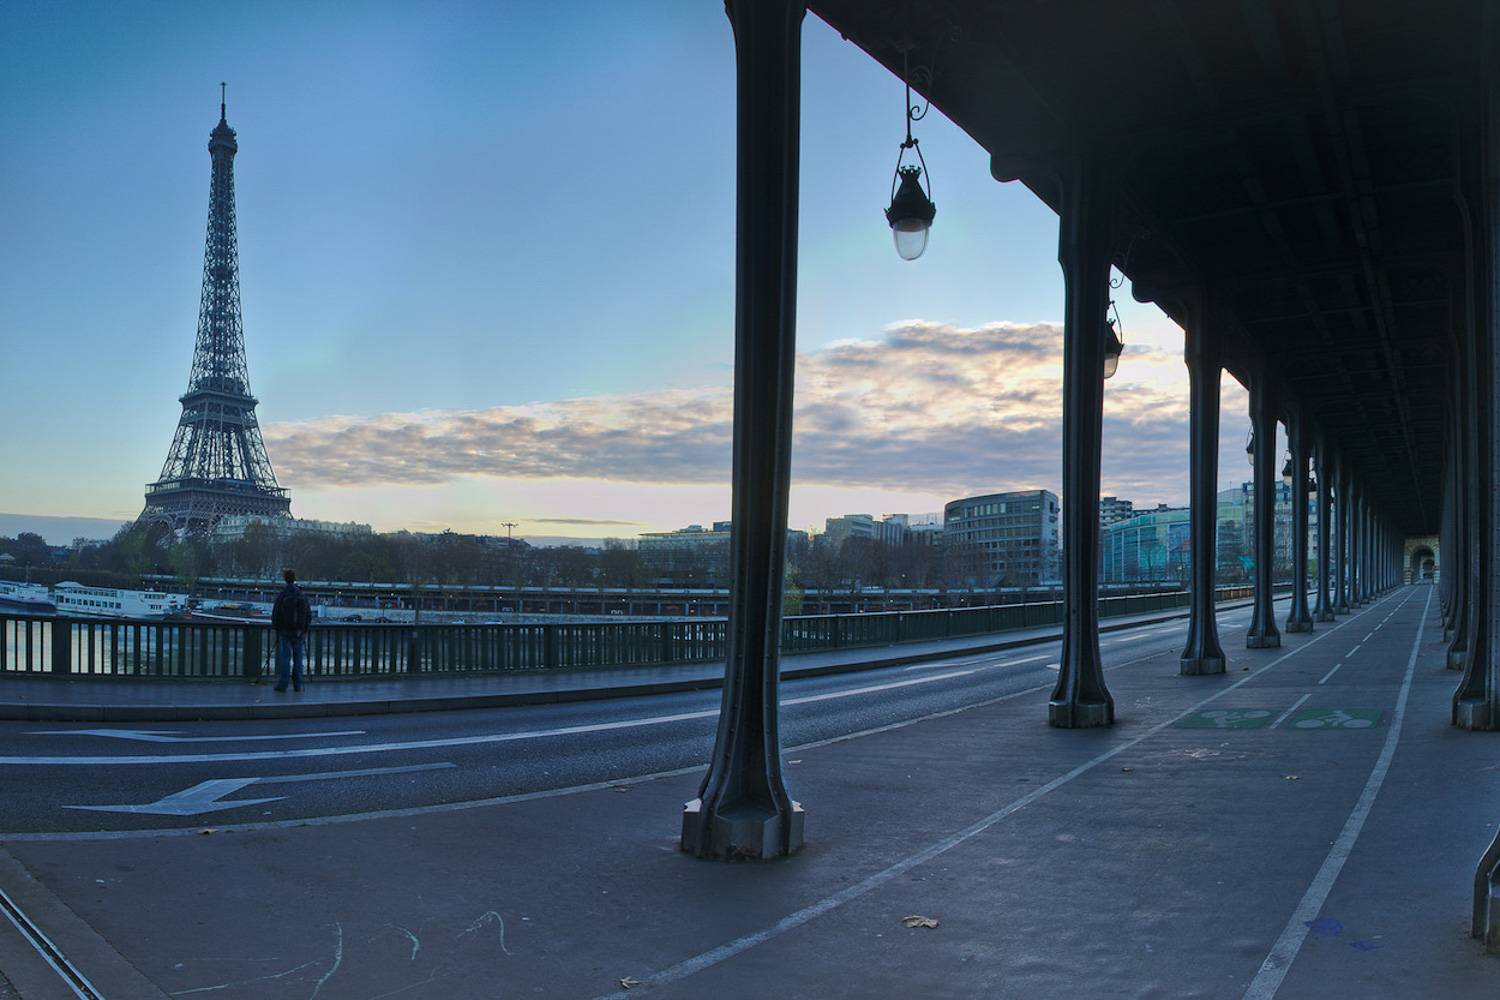 Image of the Pont de Bir-Hakeim in Paris at sunset.